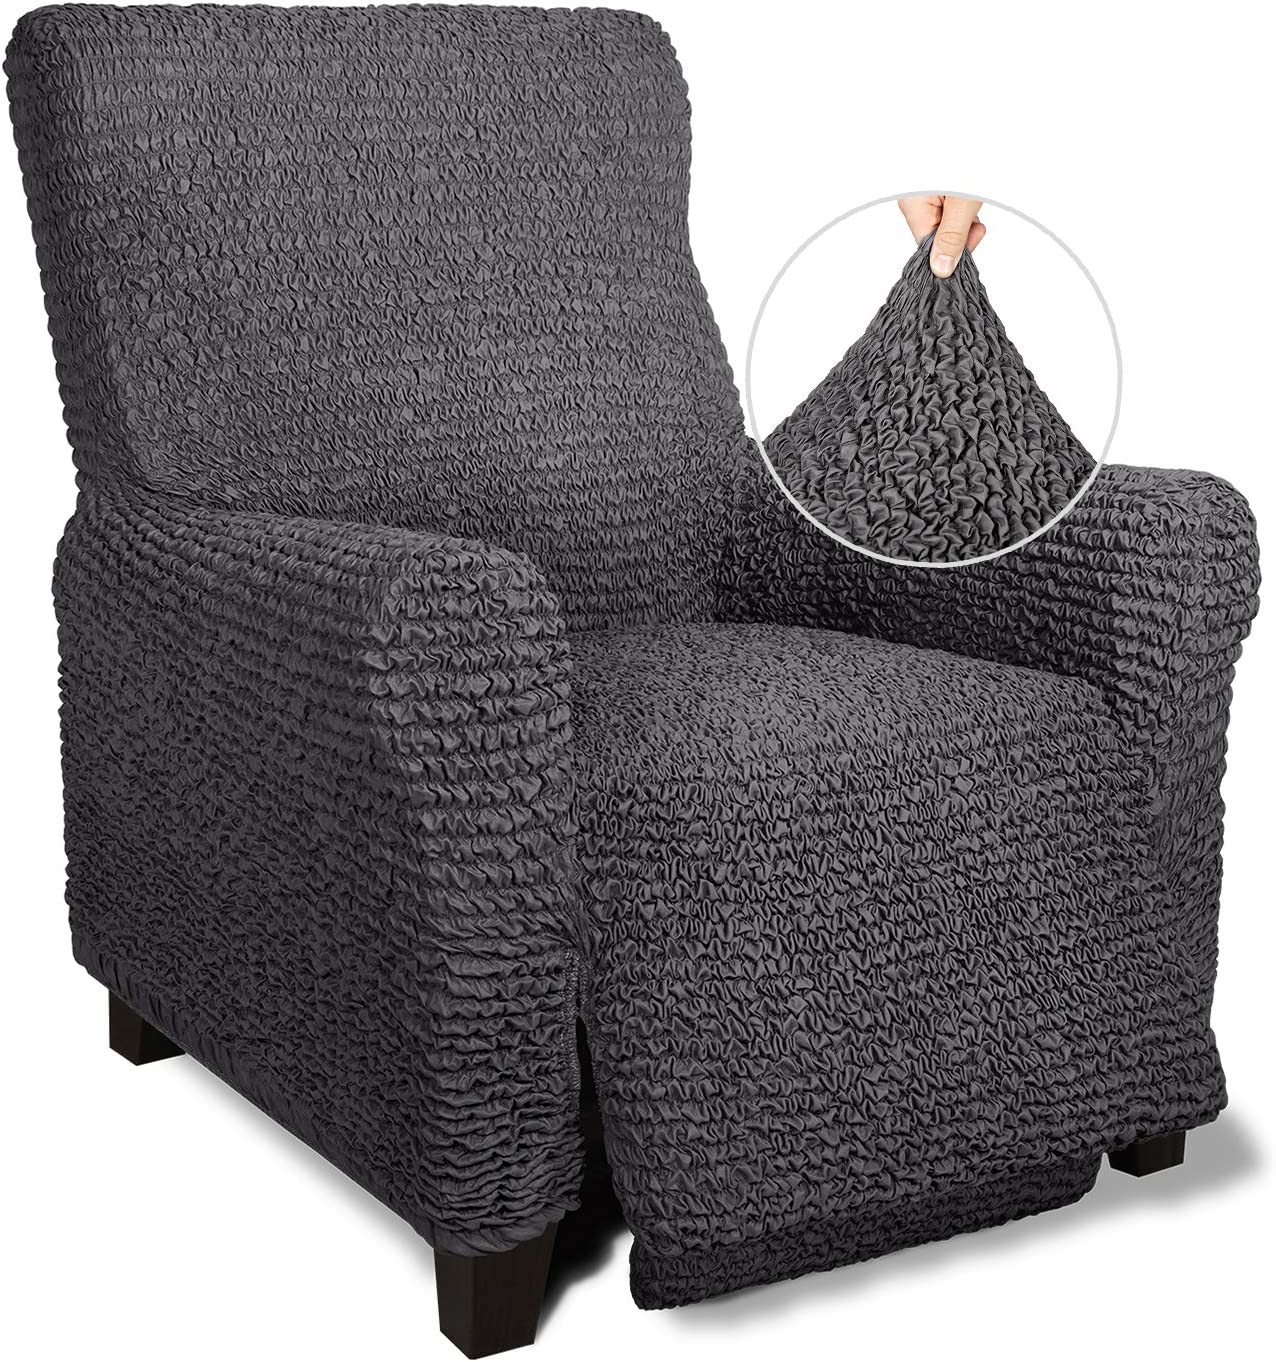 Recliner Slipcover - Chair Cover Rare Soft Fabri Polyester Max 65% OFF